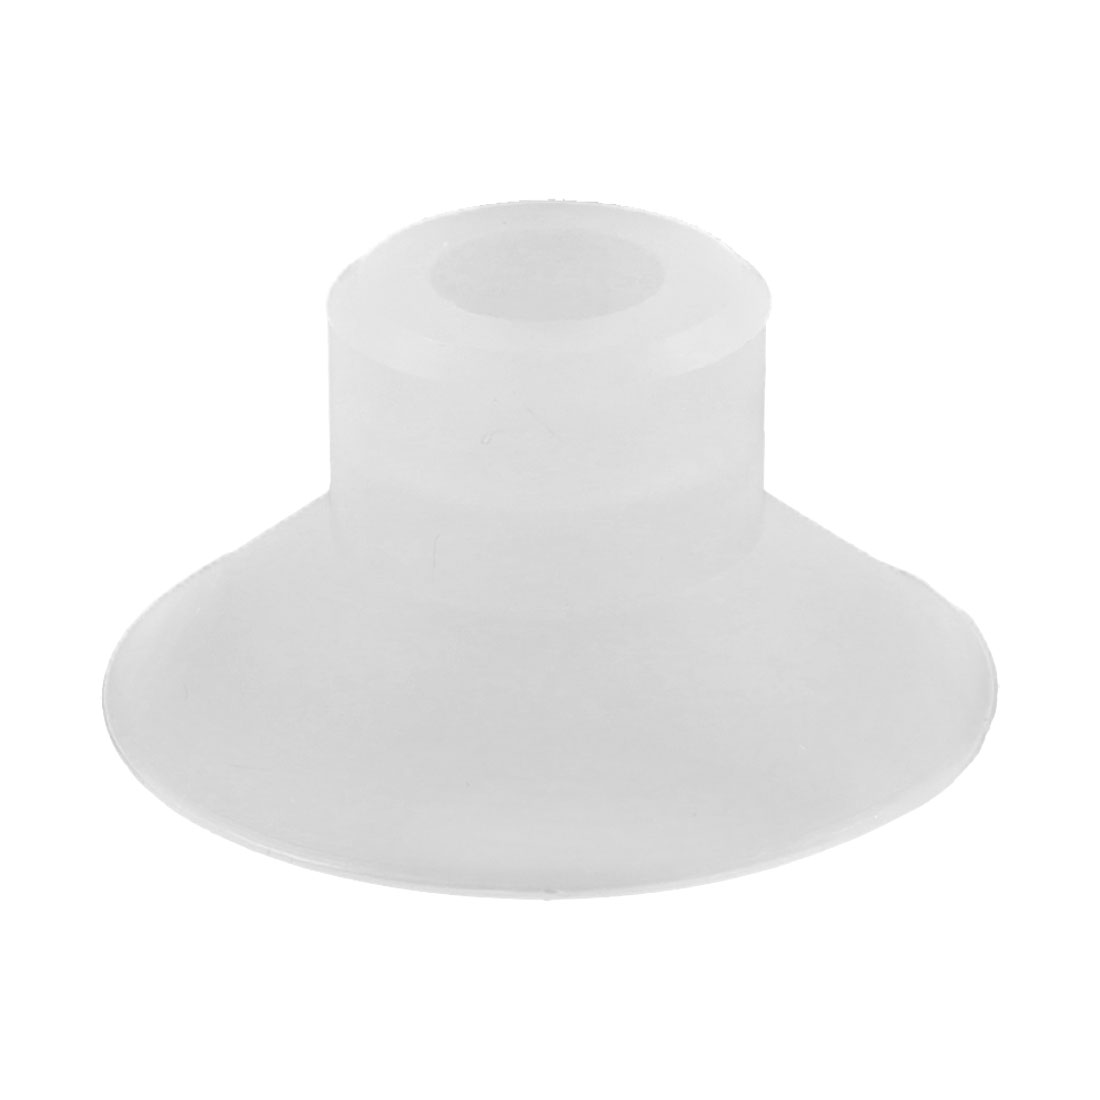 30mm x 14mm Silicone Ozone Resistance Vacuum Equipment Suction Cup Sucker